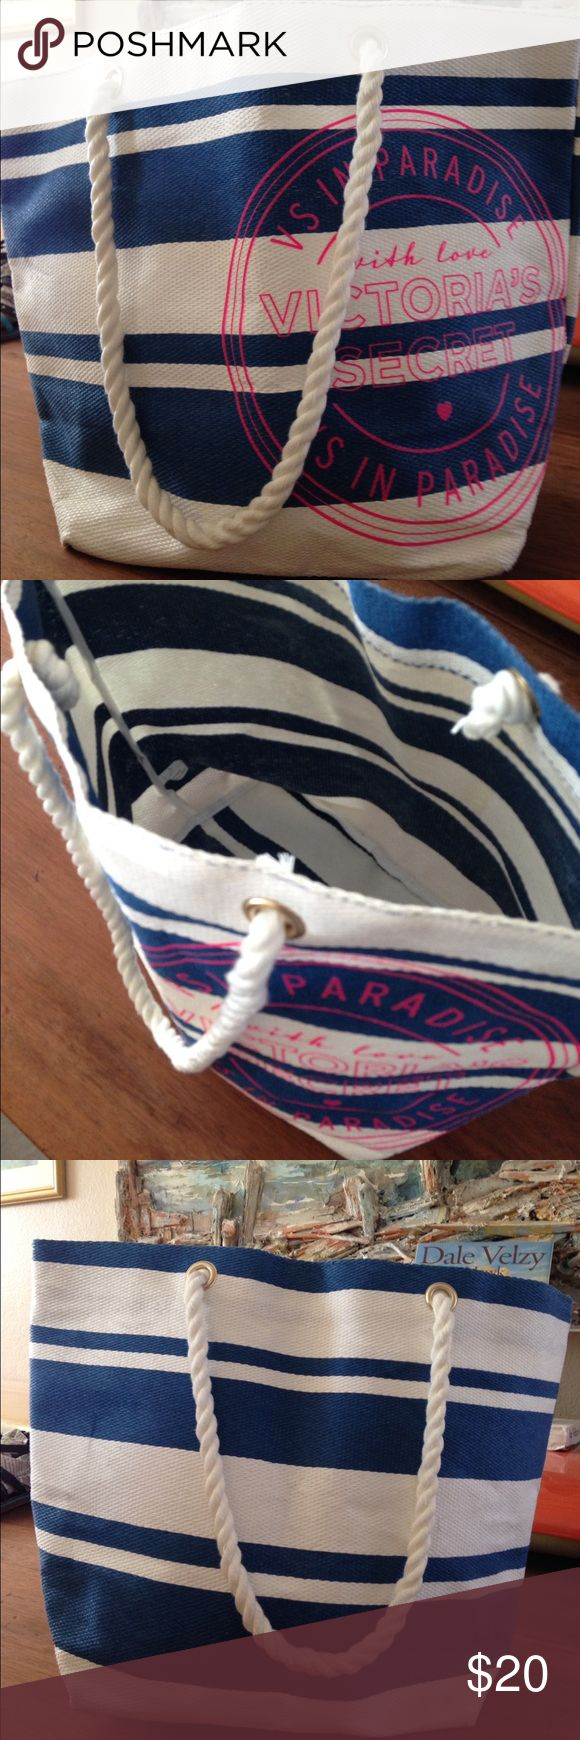 Vitoria secret Blue and white nautical fun Victoria secret bag . Great for all occasions.  Used but looks brand new! Bags